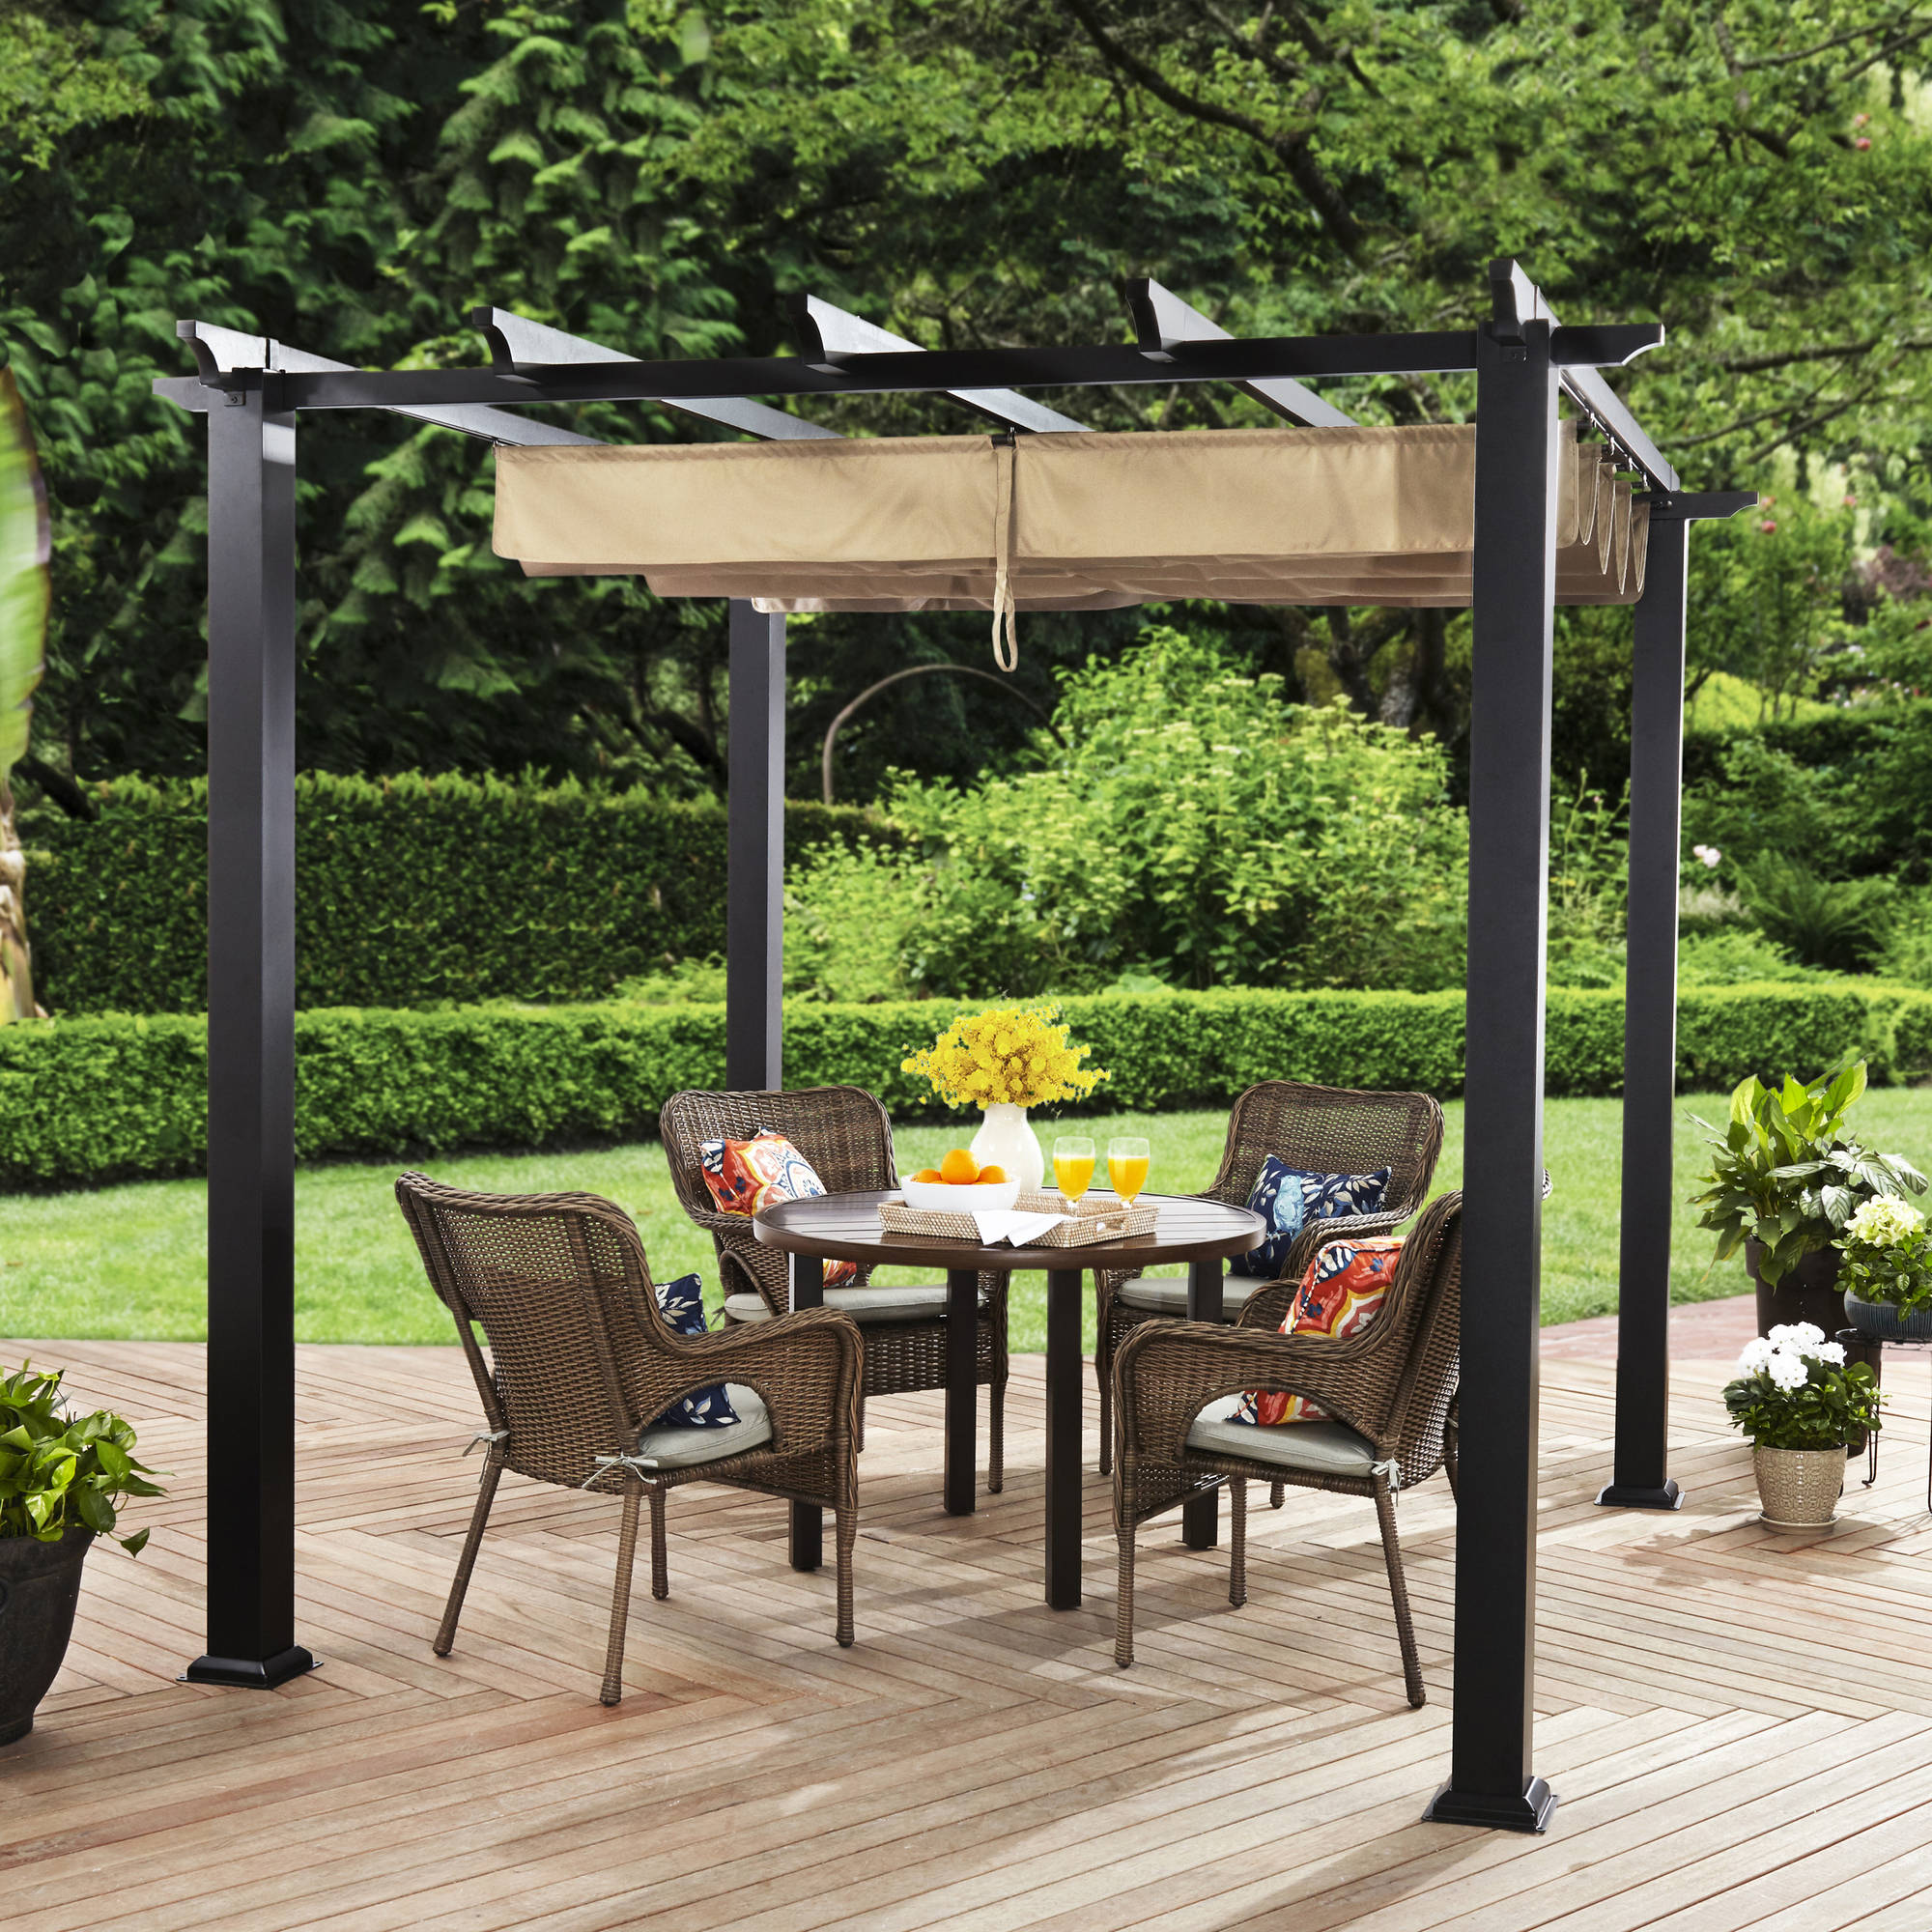 Better Homes and Gardens Meritmoor Aluminum Steel Pergola with